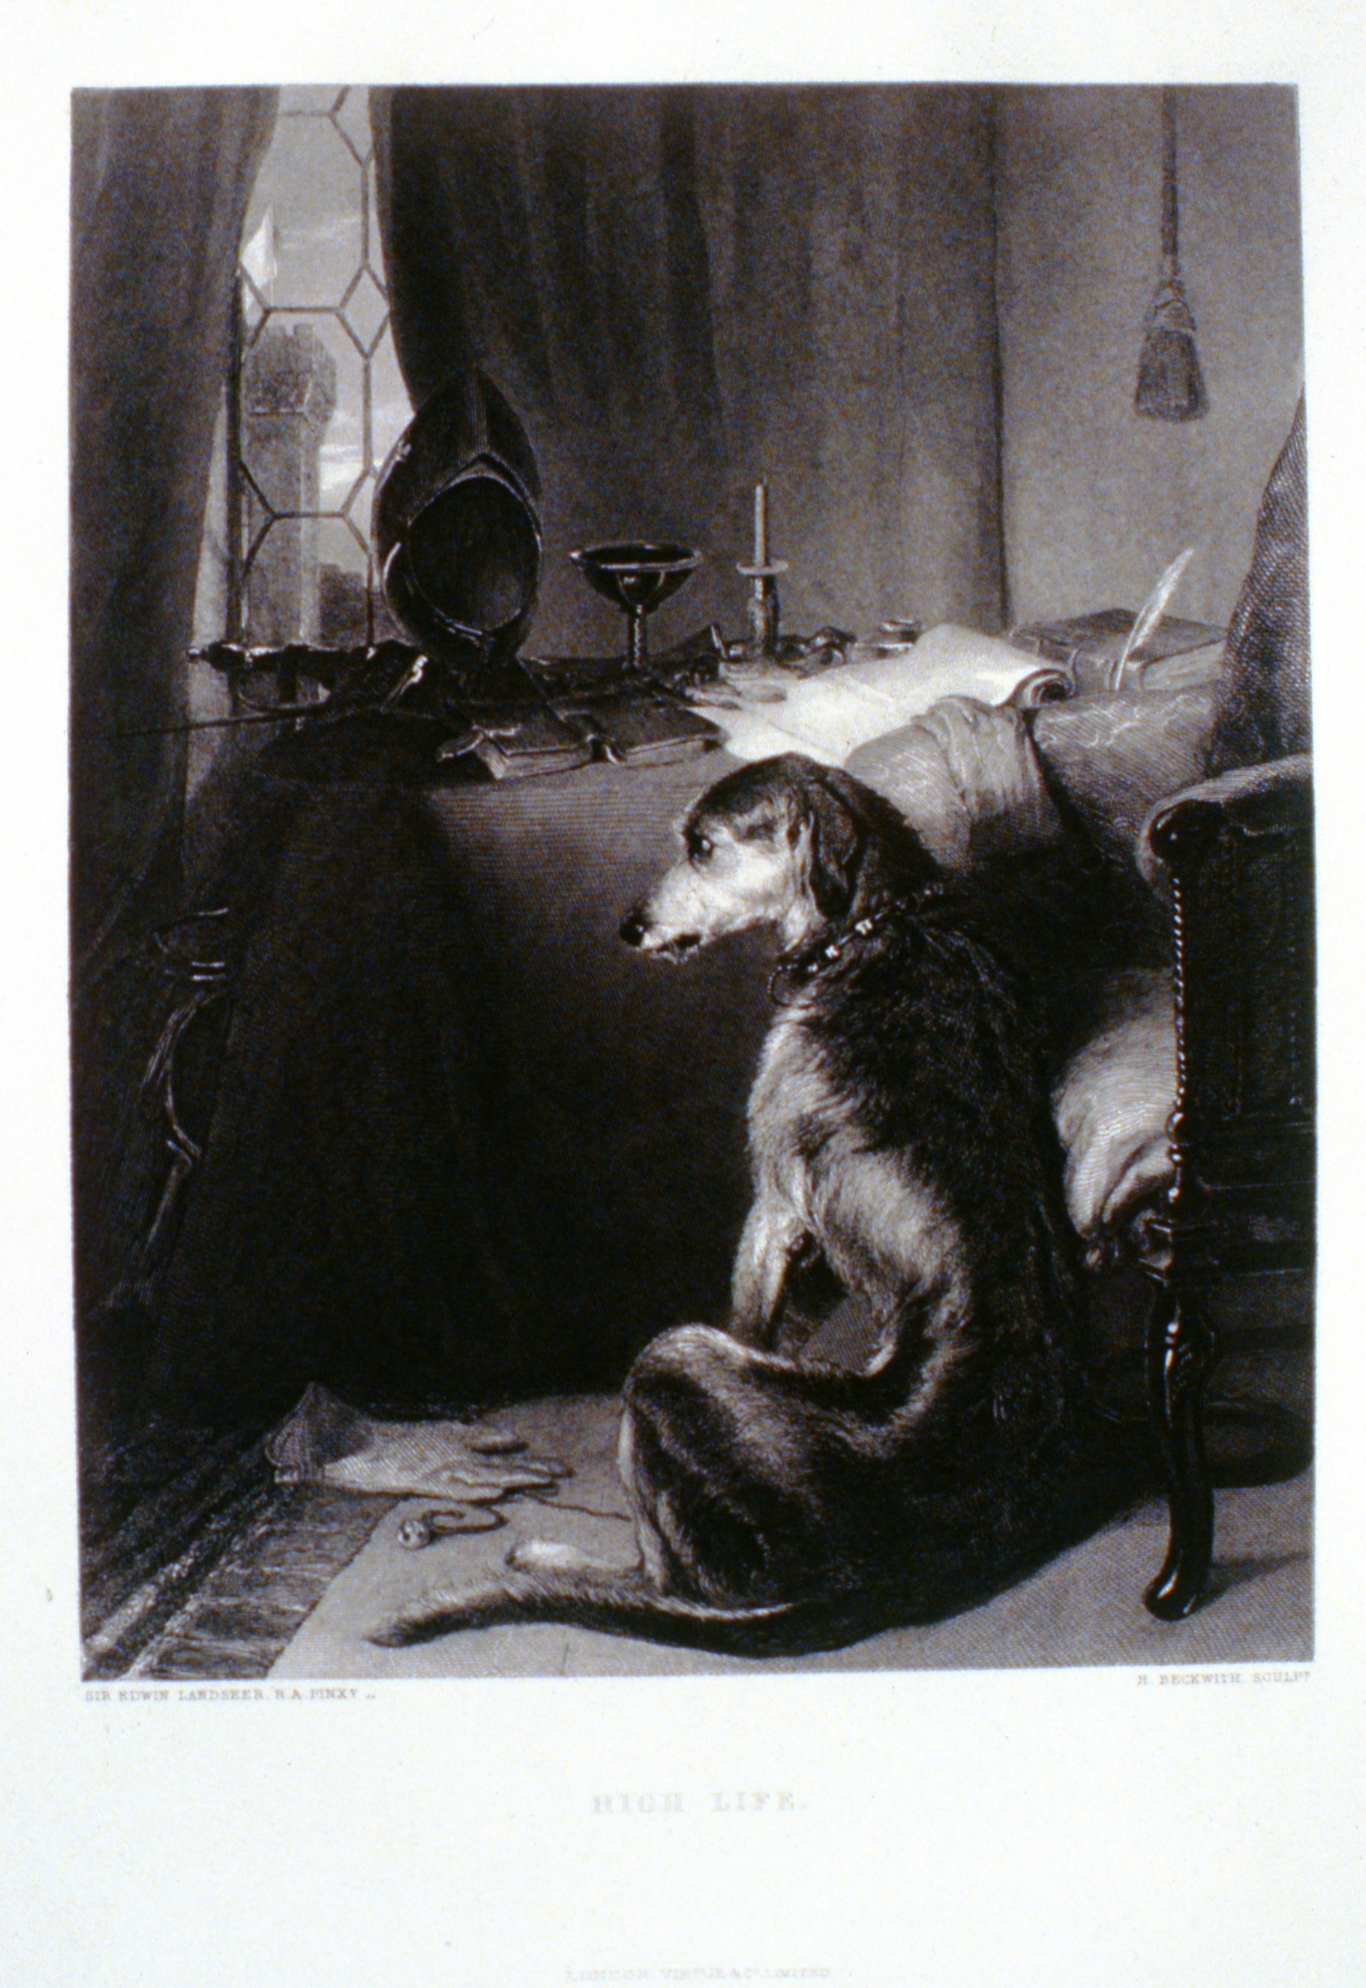 High Life , c. late 19th Century, H. Beckwith, steel engraving, 23.8 cm x 18.4 cm, 1996.08.11, gift of Yvonne Adams